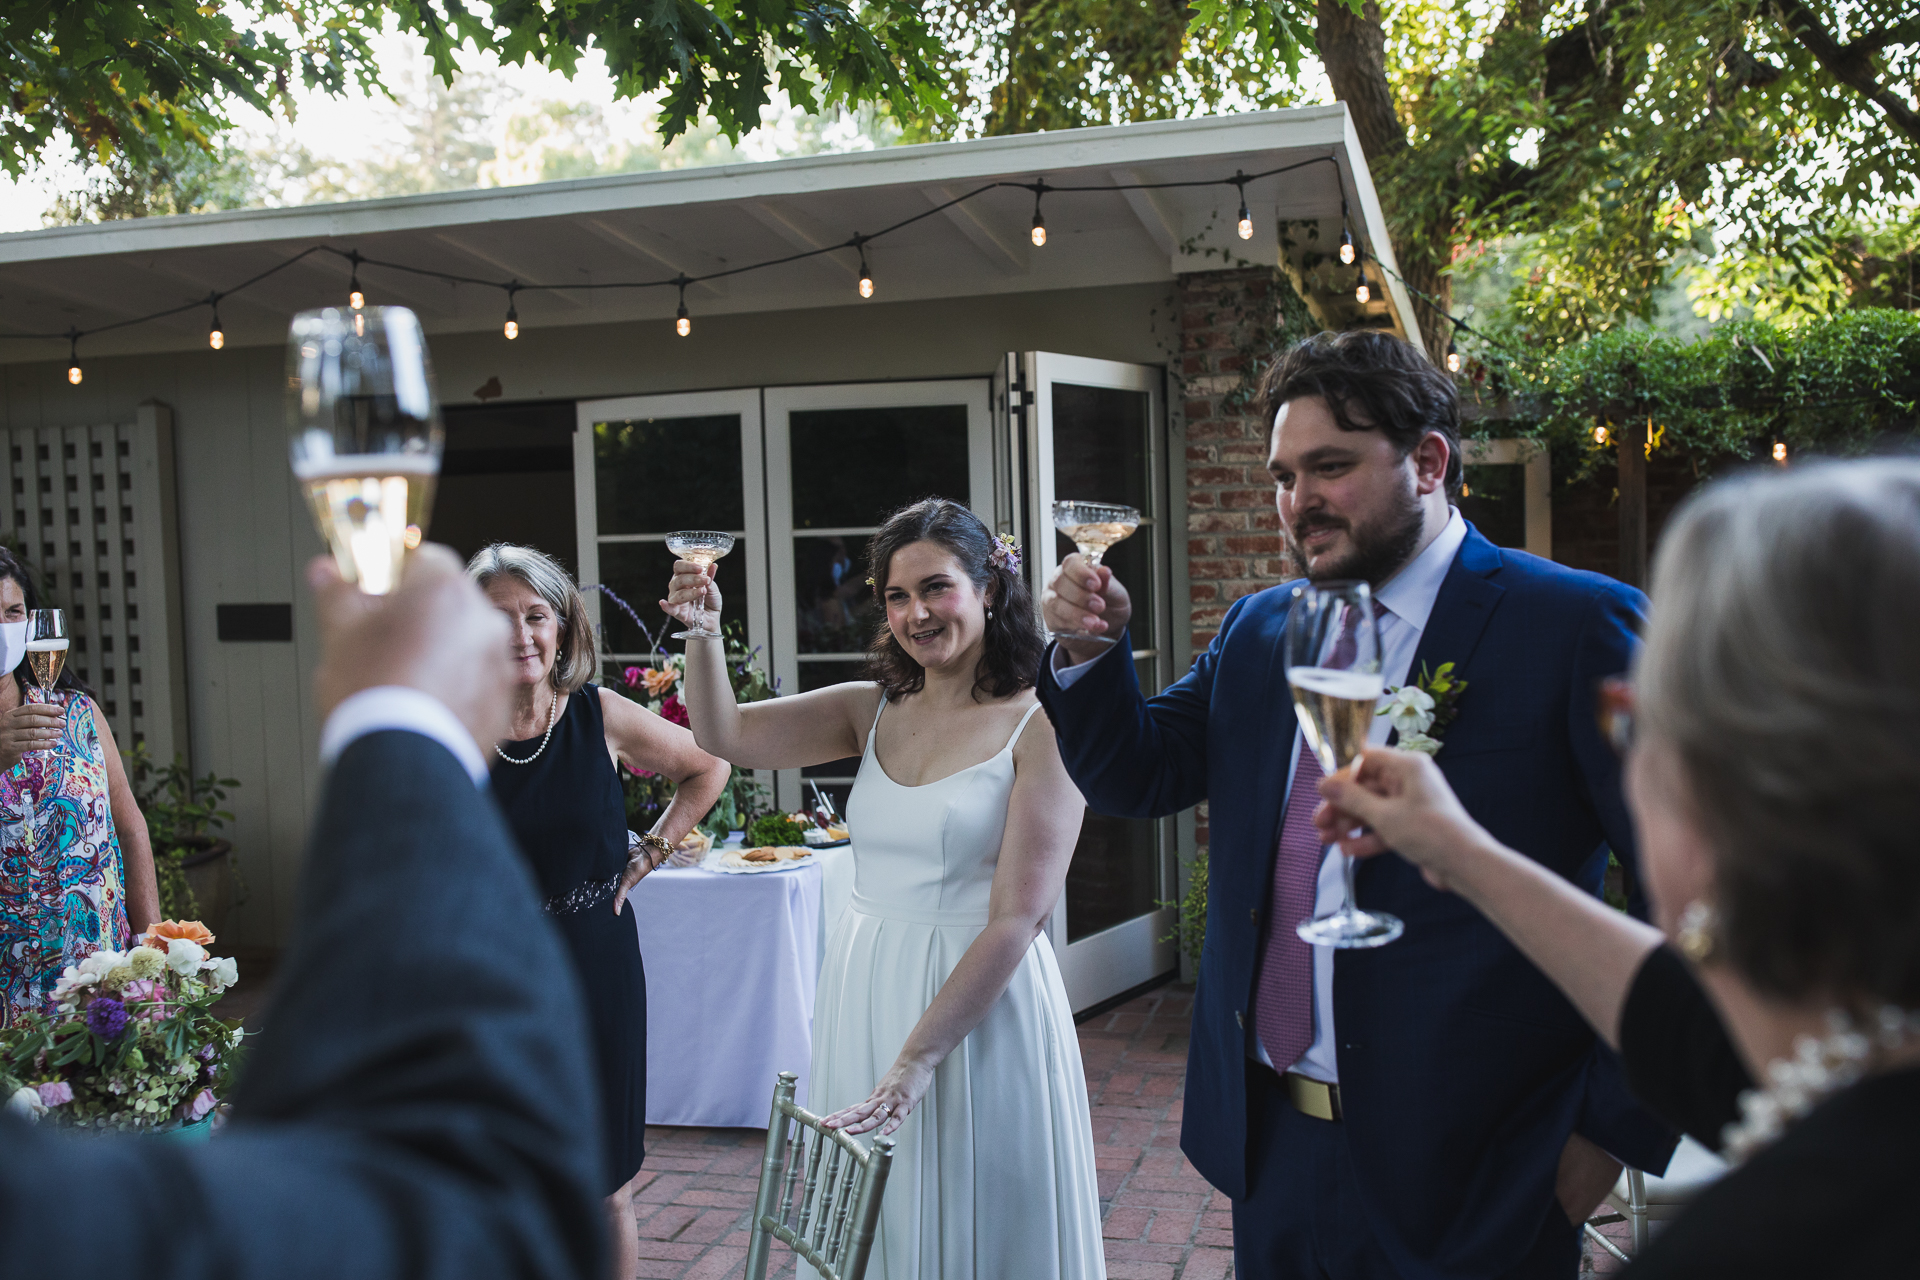 Gamble Garden Wedding Venue Picture - Palo Alto CA | The small group of family shared a few very heartfelt toasts